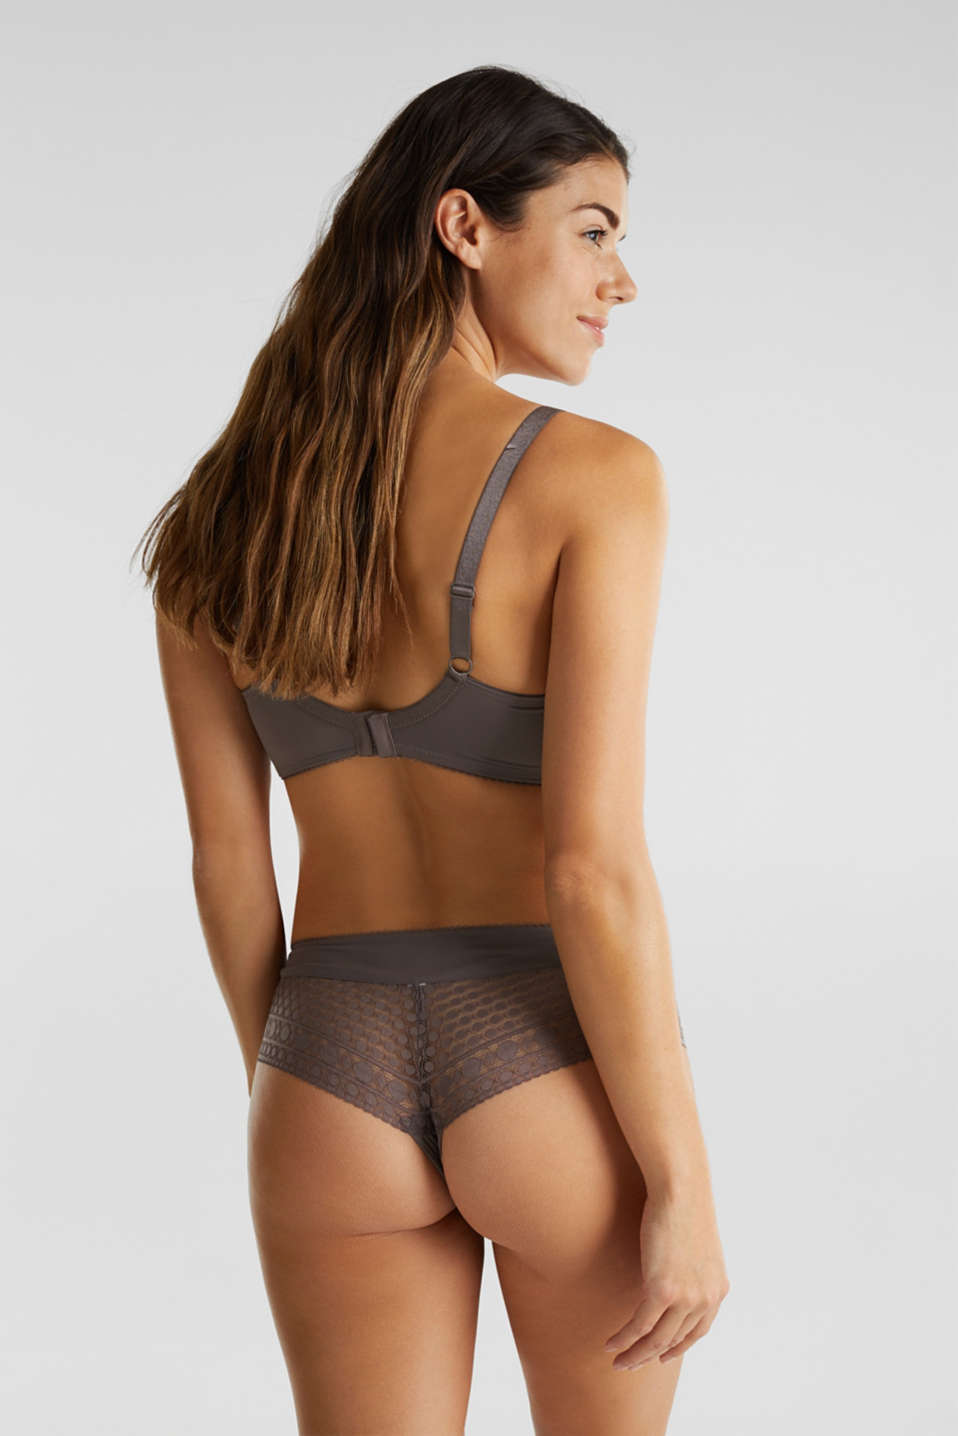 Unpadded underwire bra for larger cup sizes, TAUPE, detail image number 1